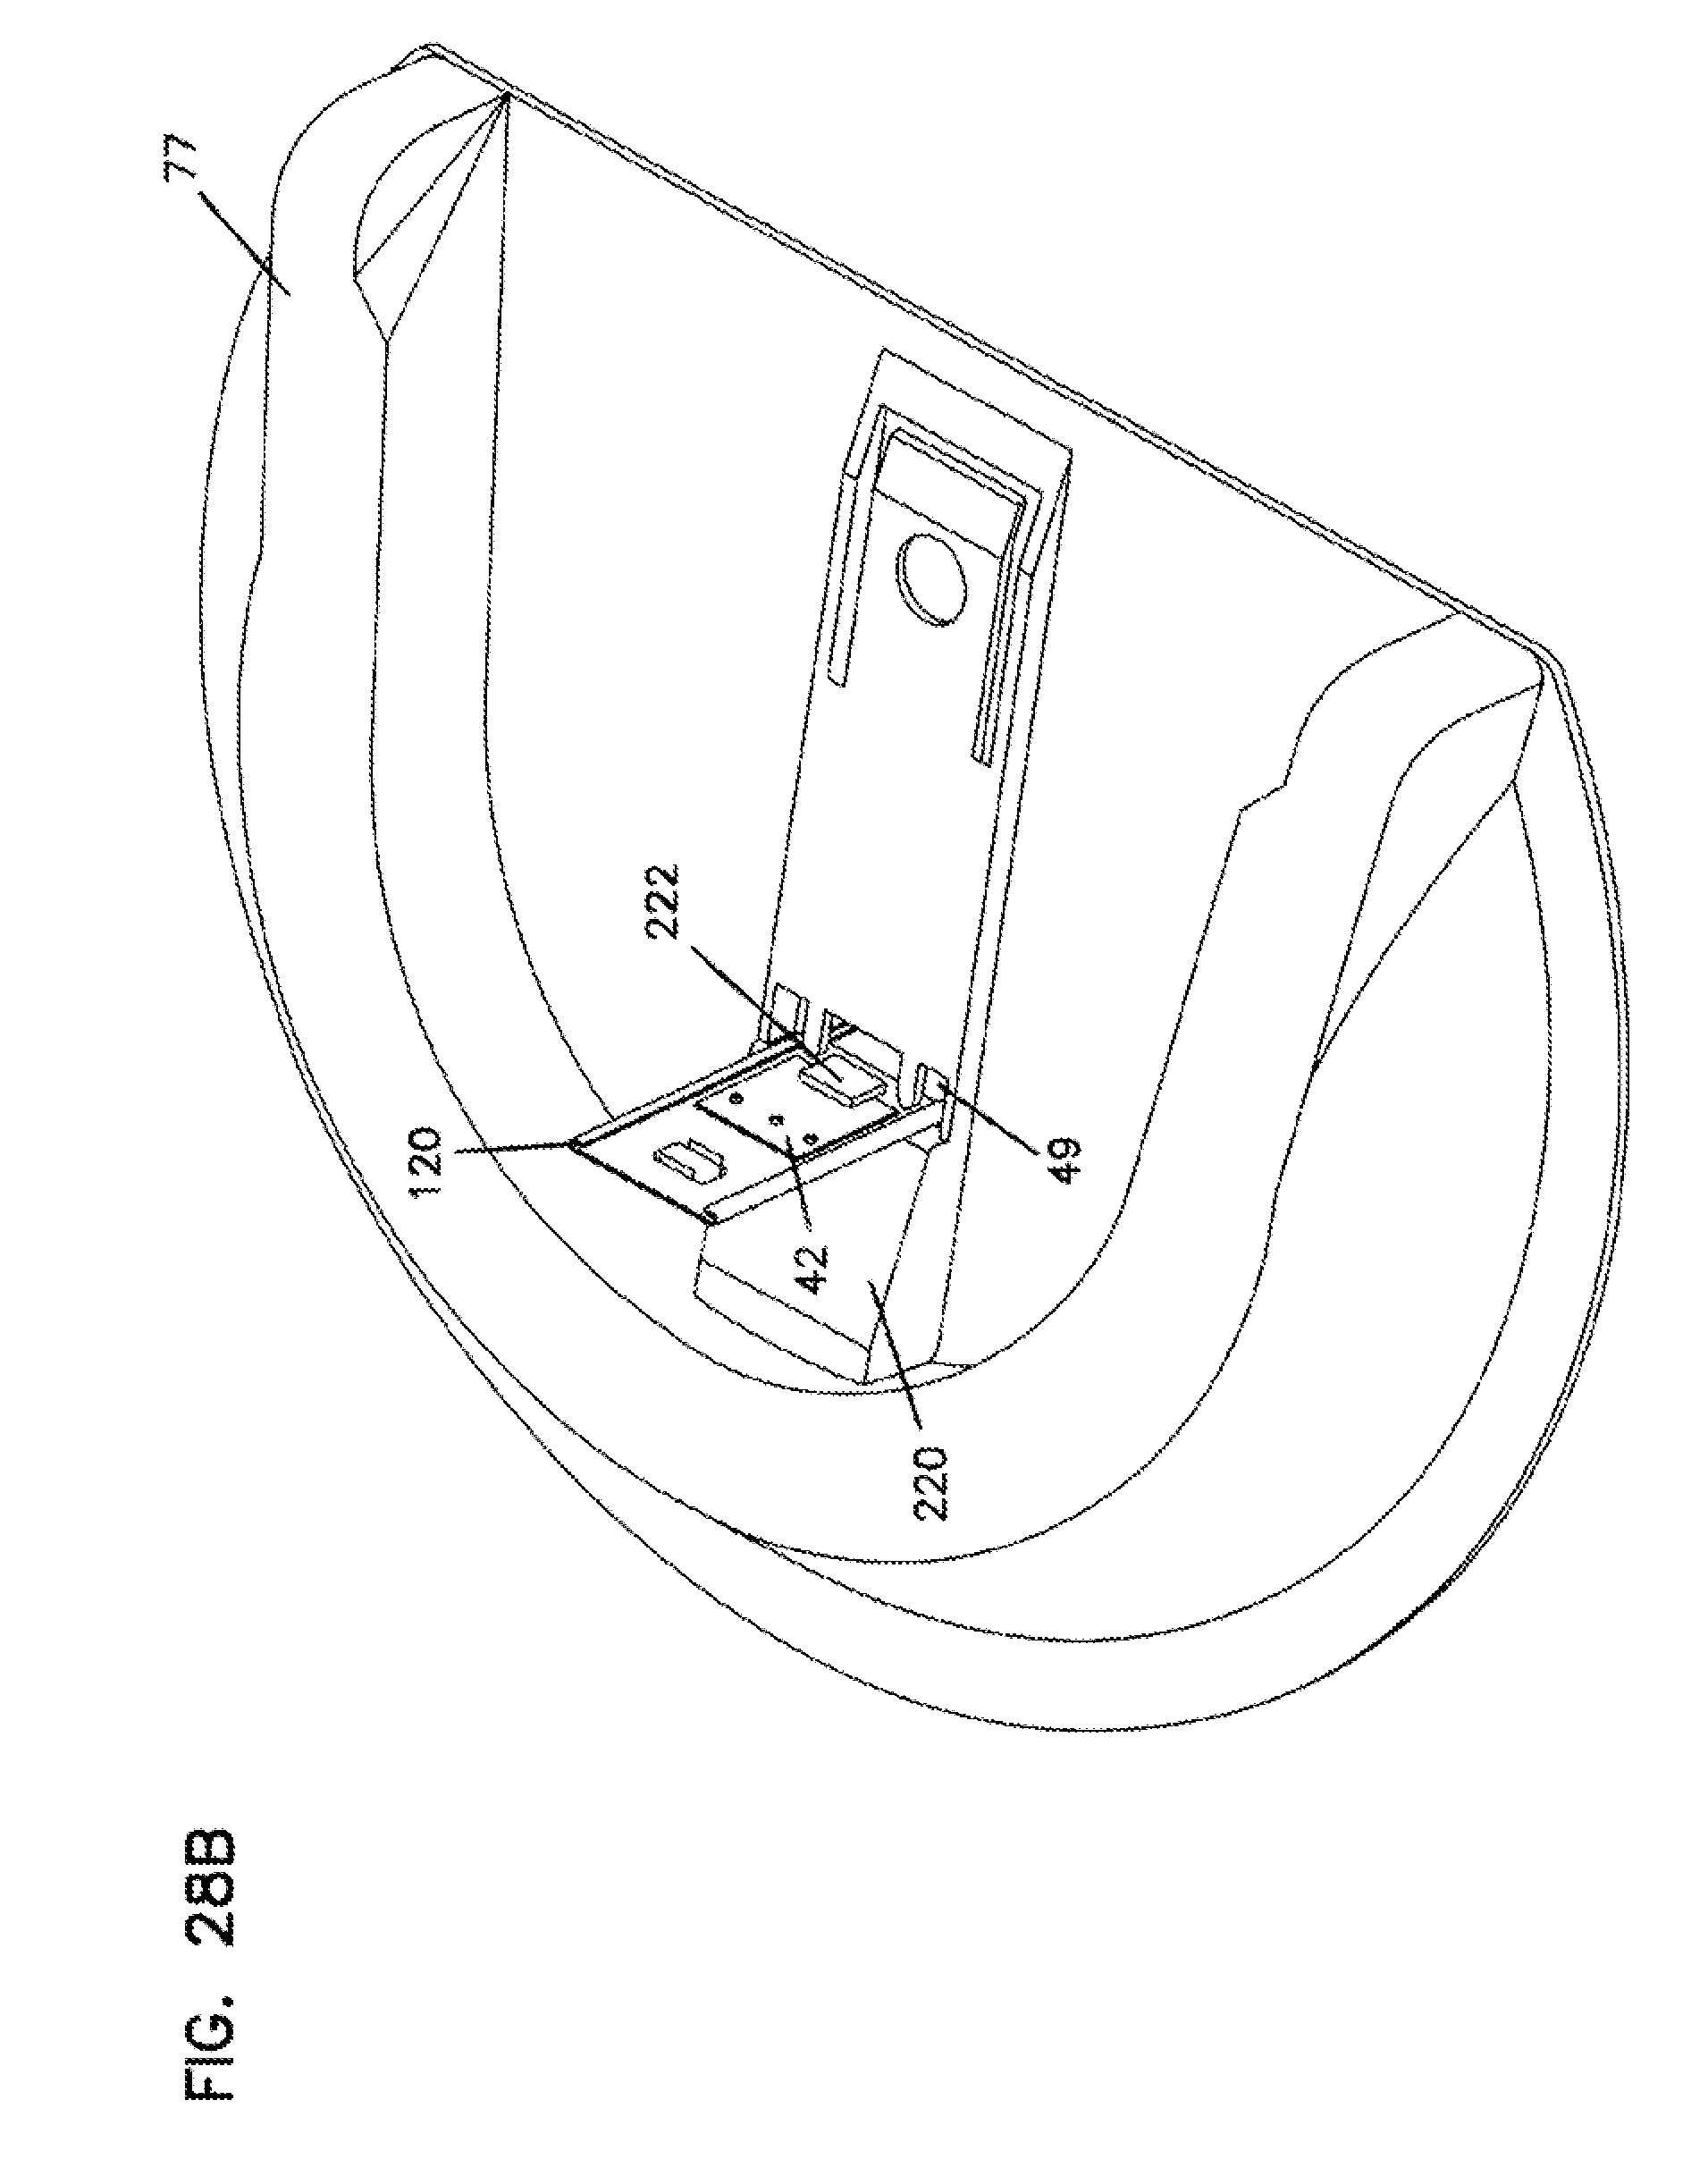 Us20070244380a1 analyte monitoring device and methods of use patents